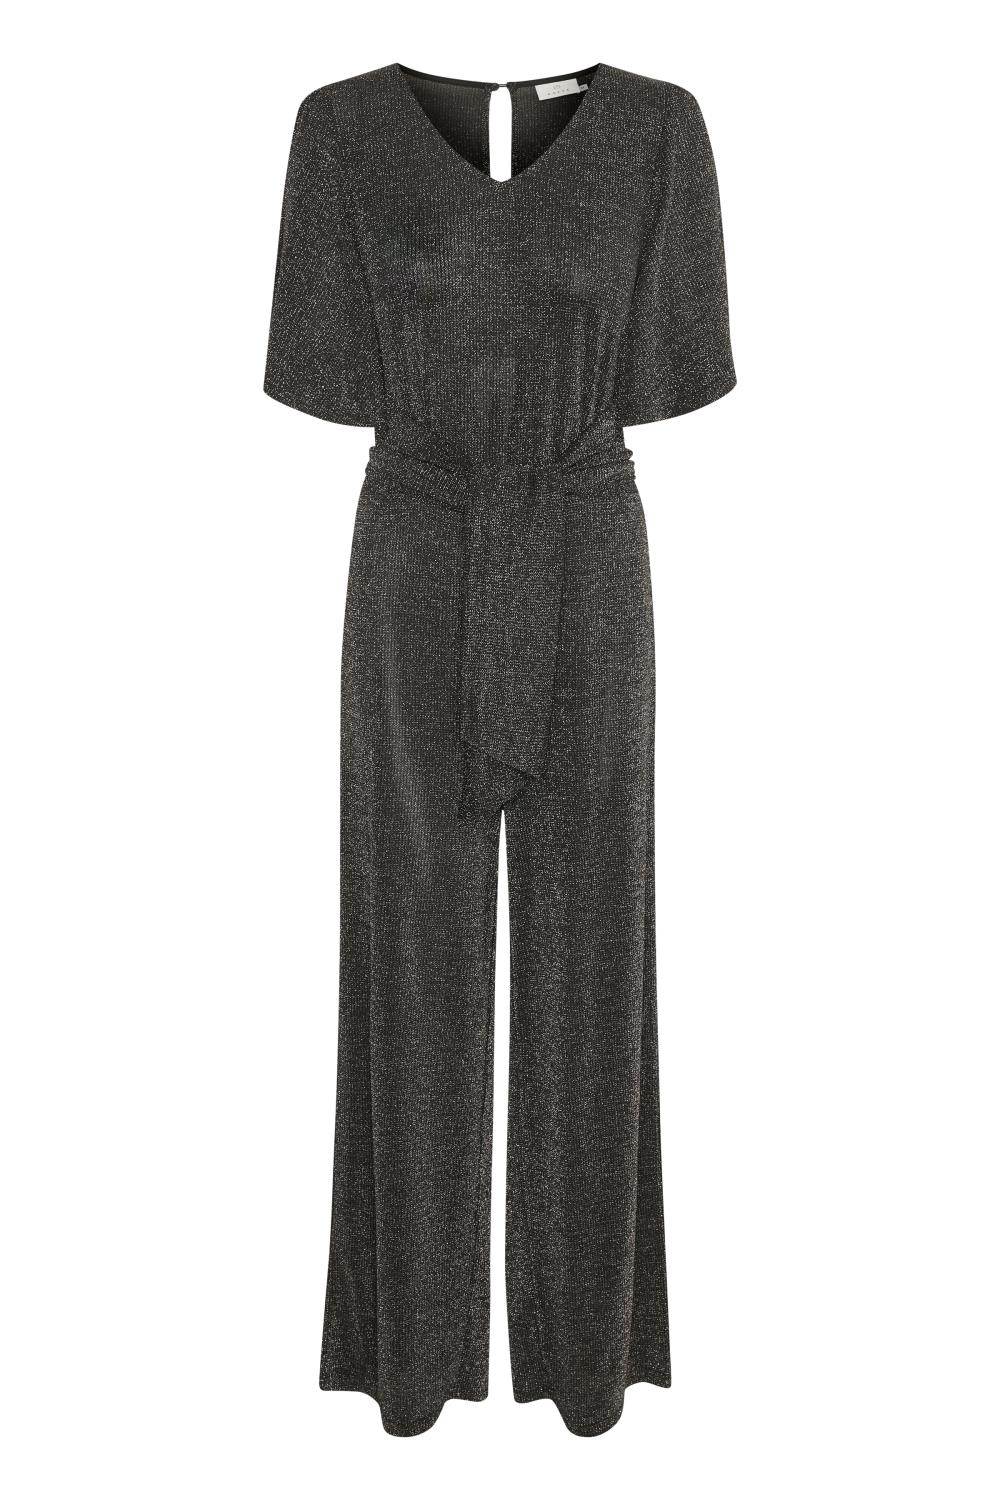 Kaffe Joy Cropped Jumpsuit, black silver lurex